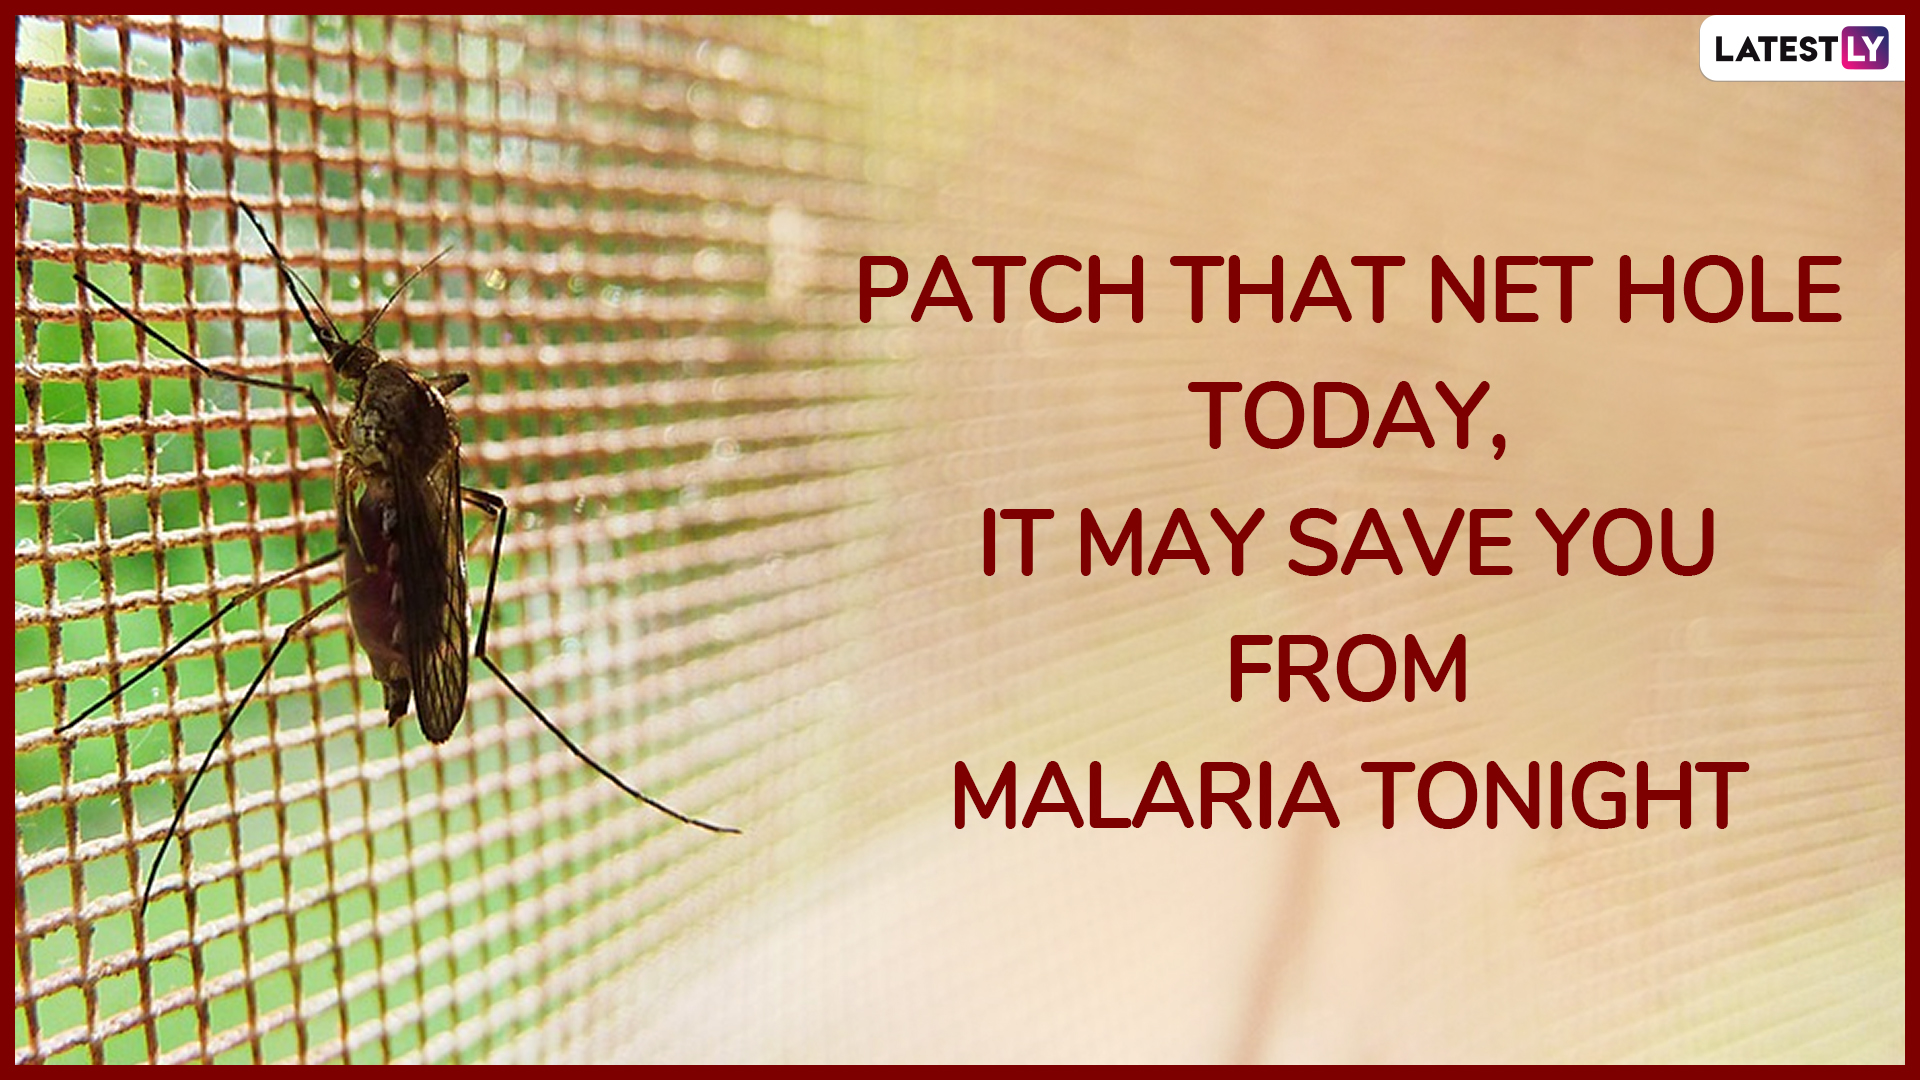 World Mosquito Day 2019: Share These Catchy Slogans On